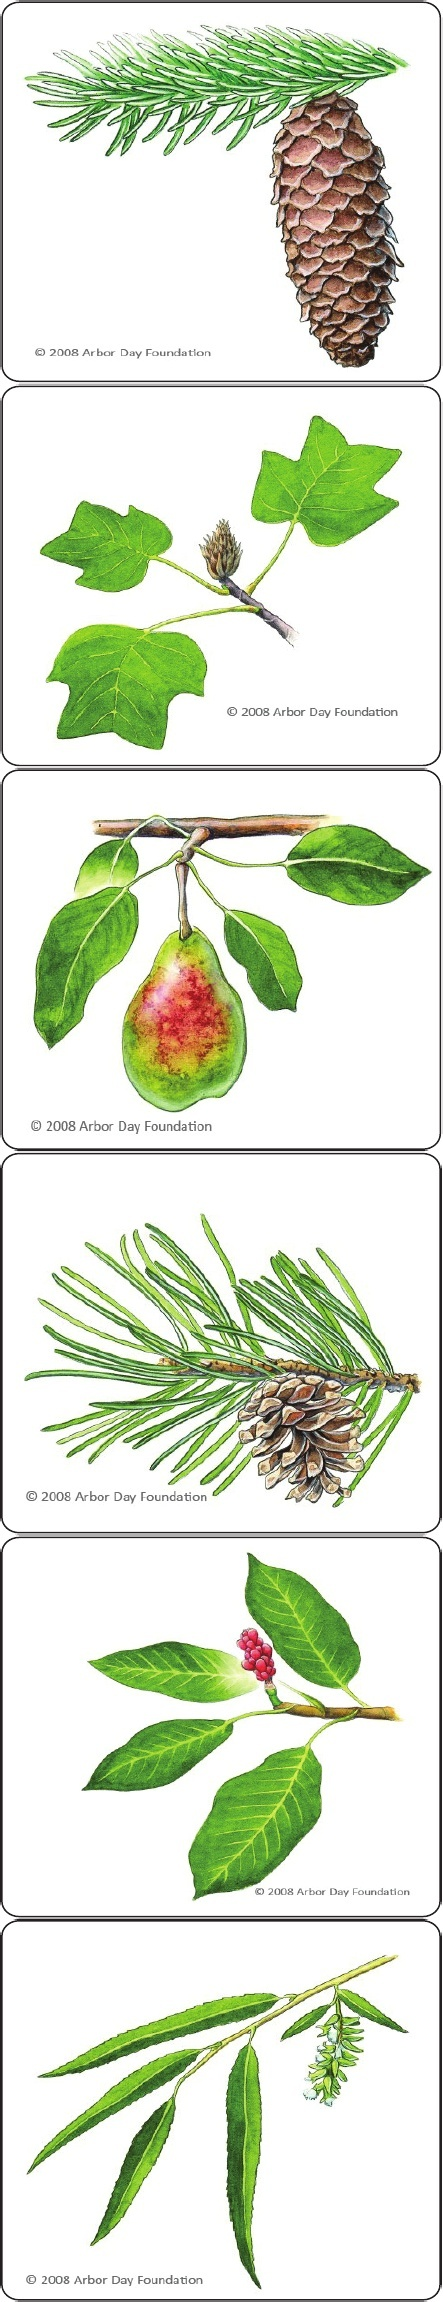 Printable leaf identification cards